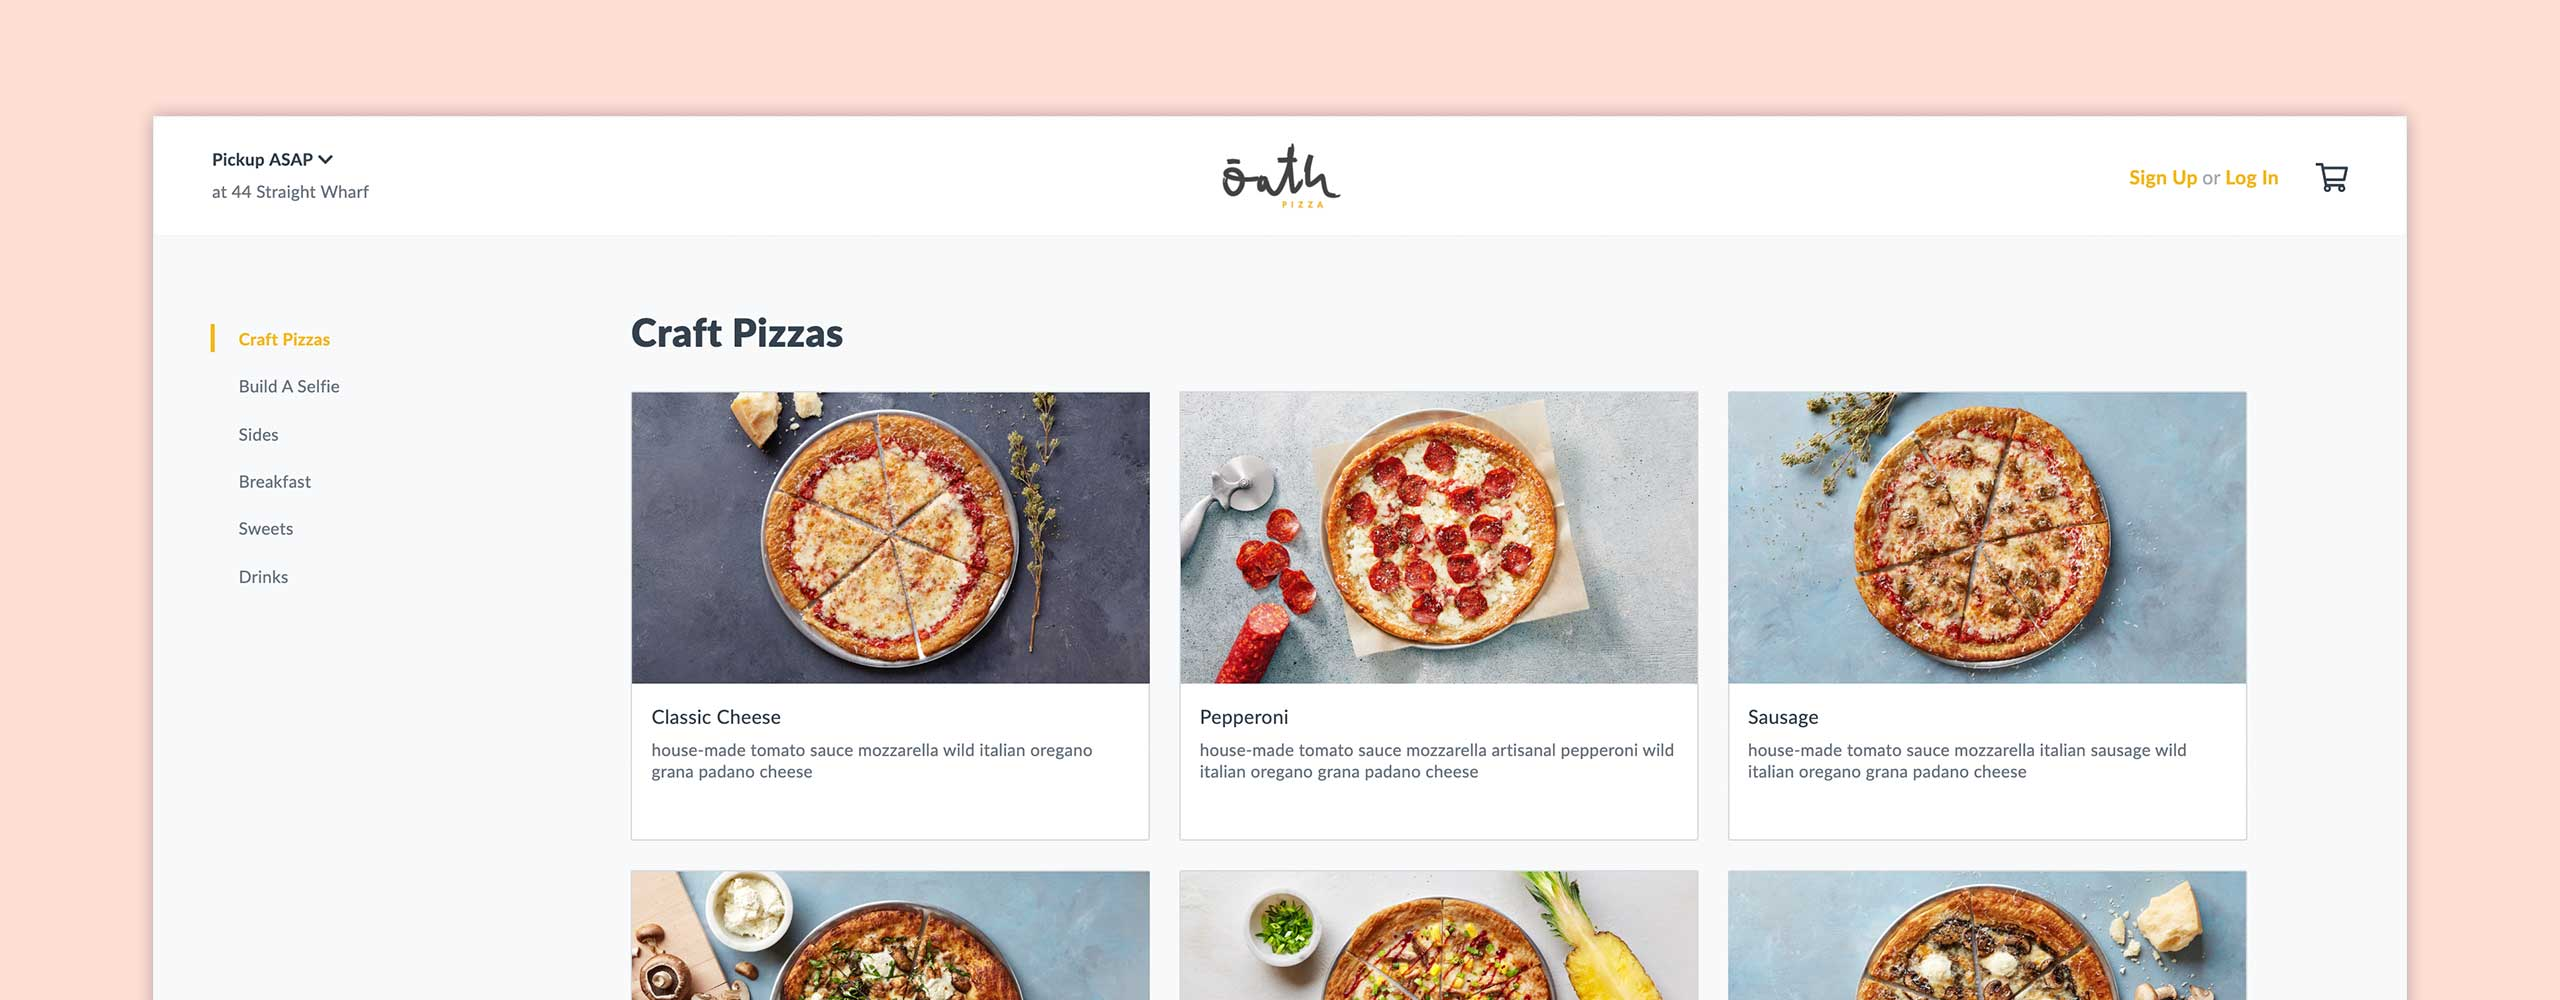 Oath web ordering experience